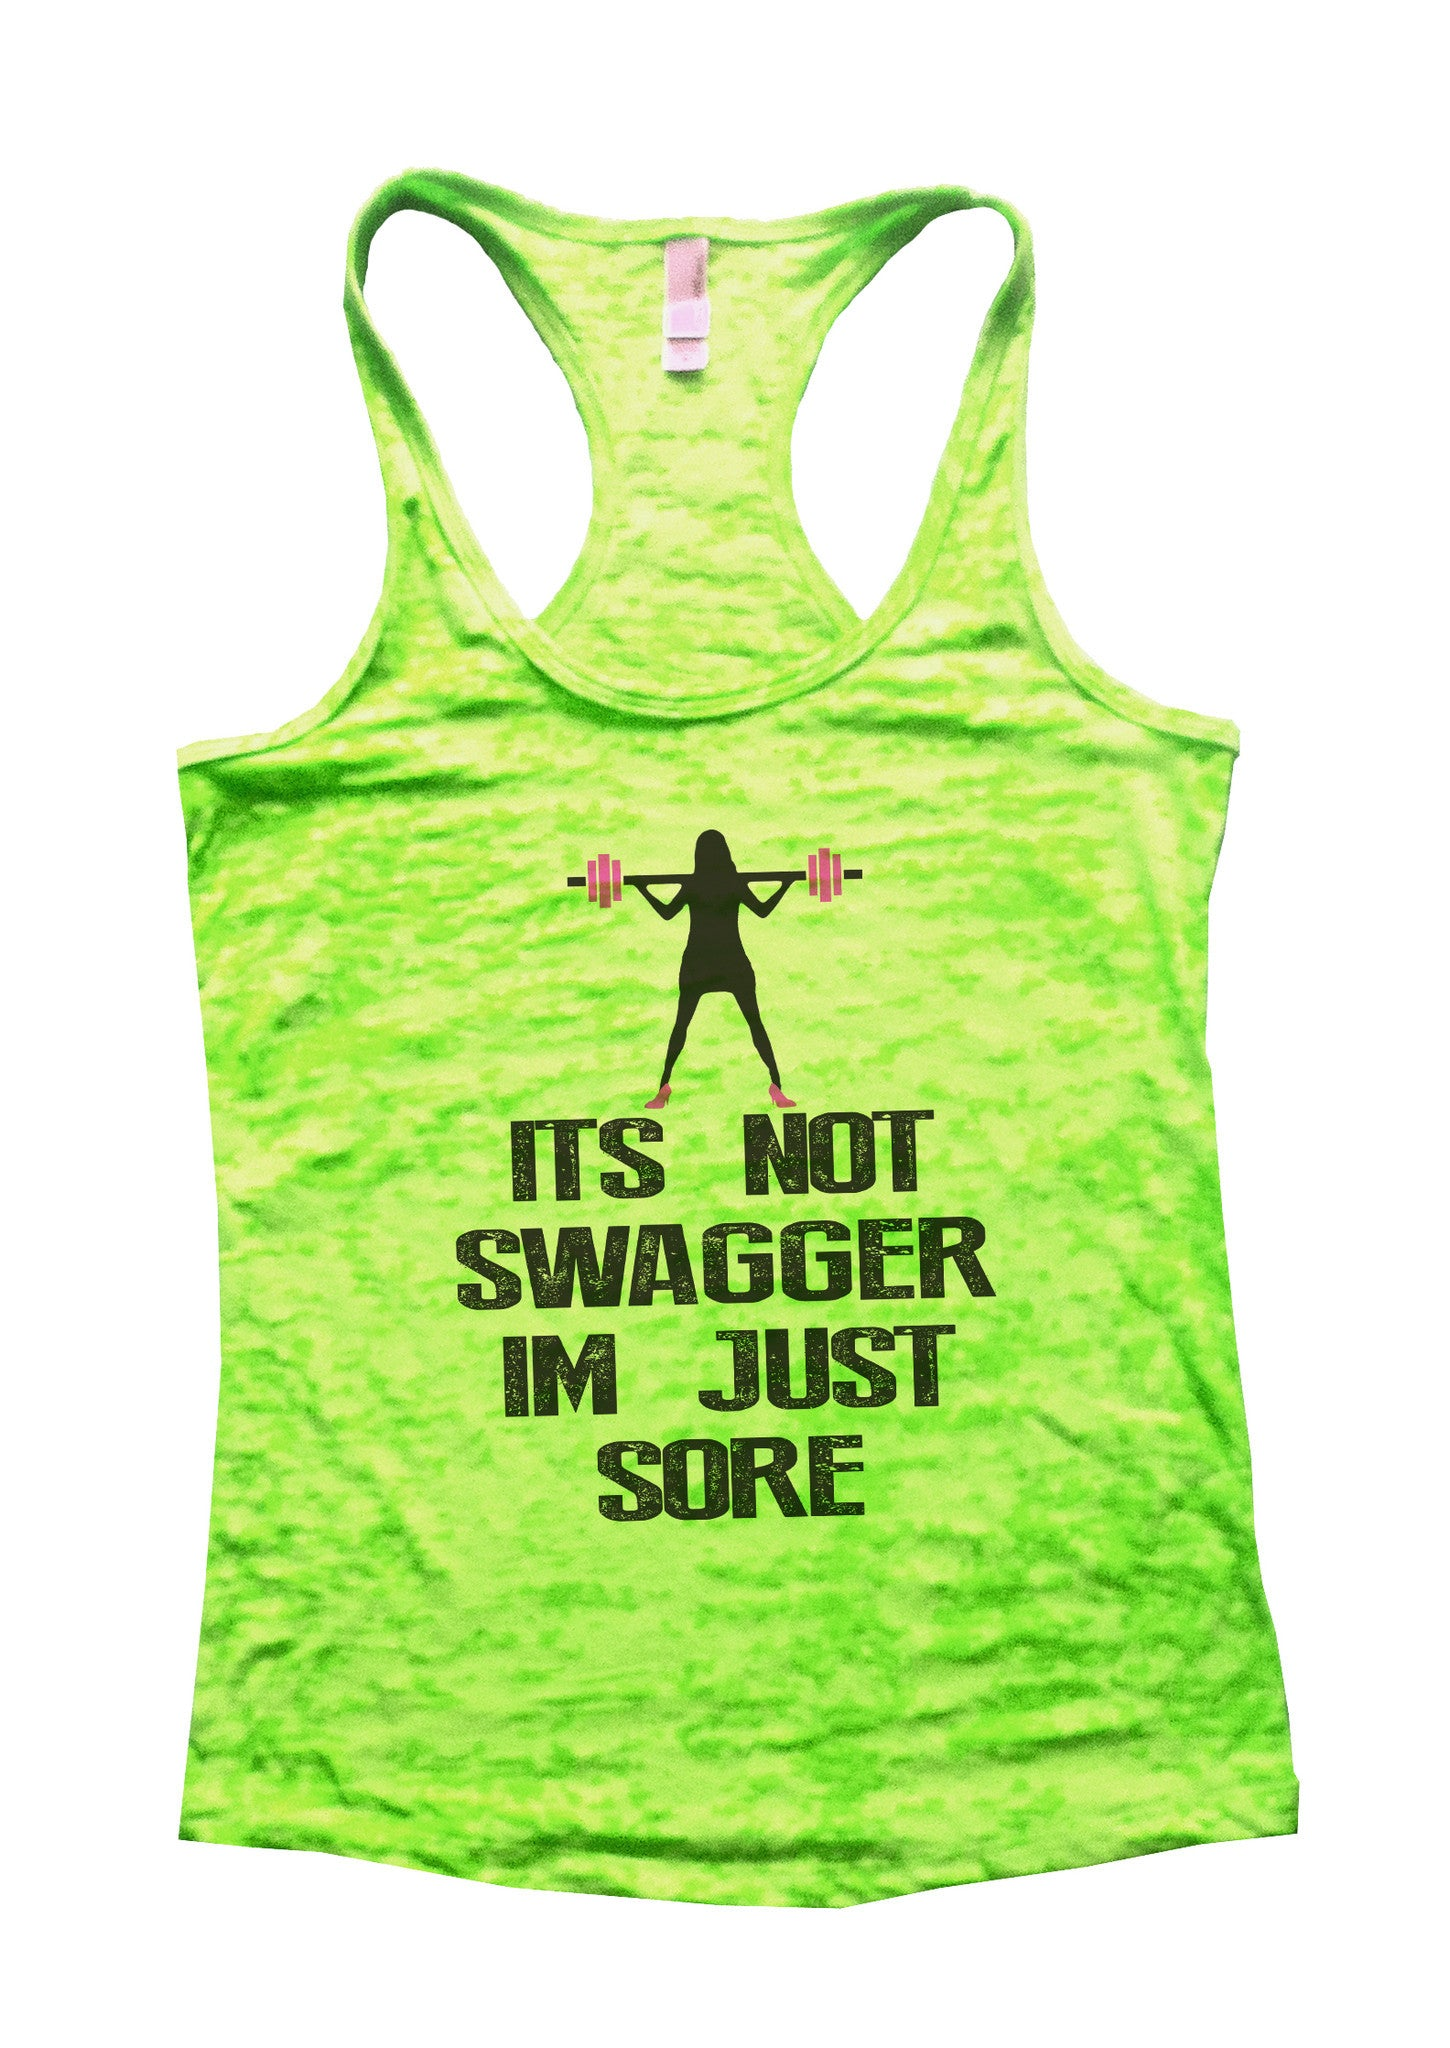 Its Not Swagger Im Just Sore Burnout Tank Top By BurnoutTankTops.com - 502 - Funny Shirts Tank Tops Burnouts and Triblends  - 1